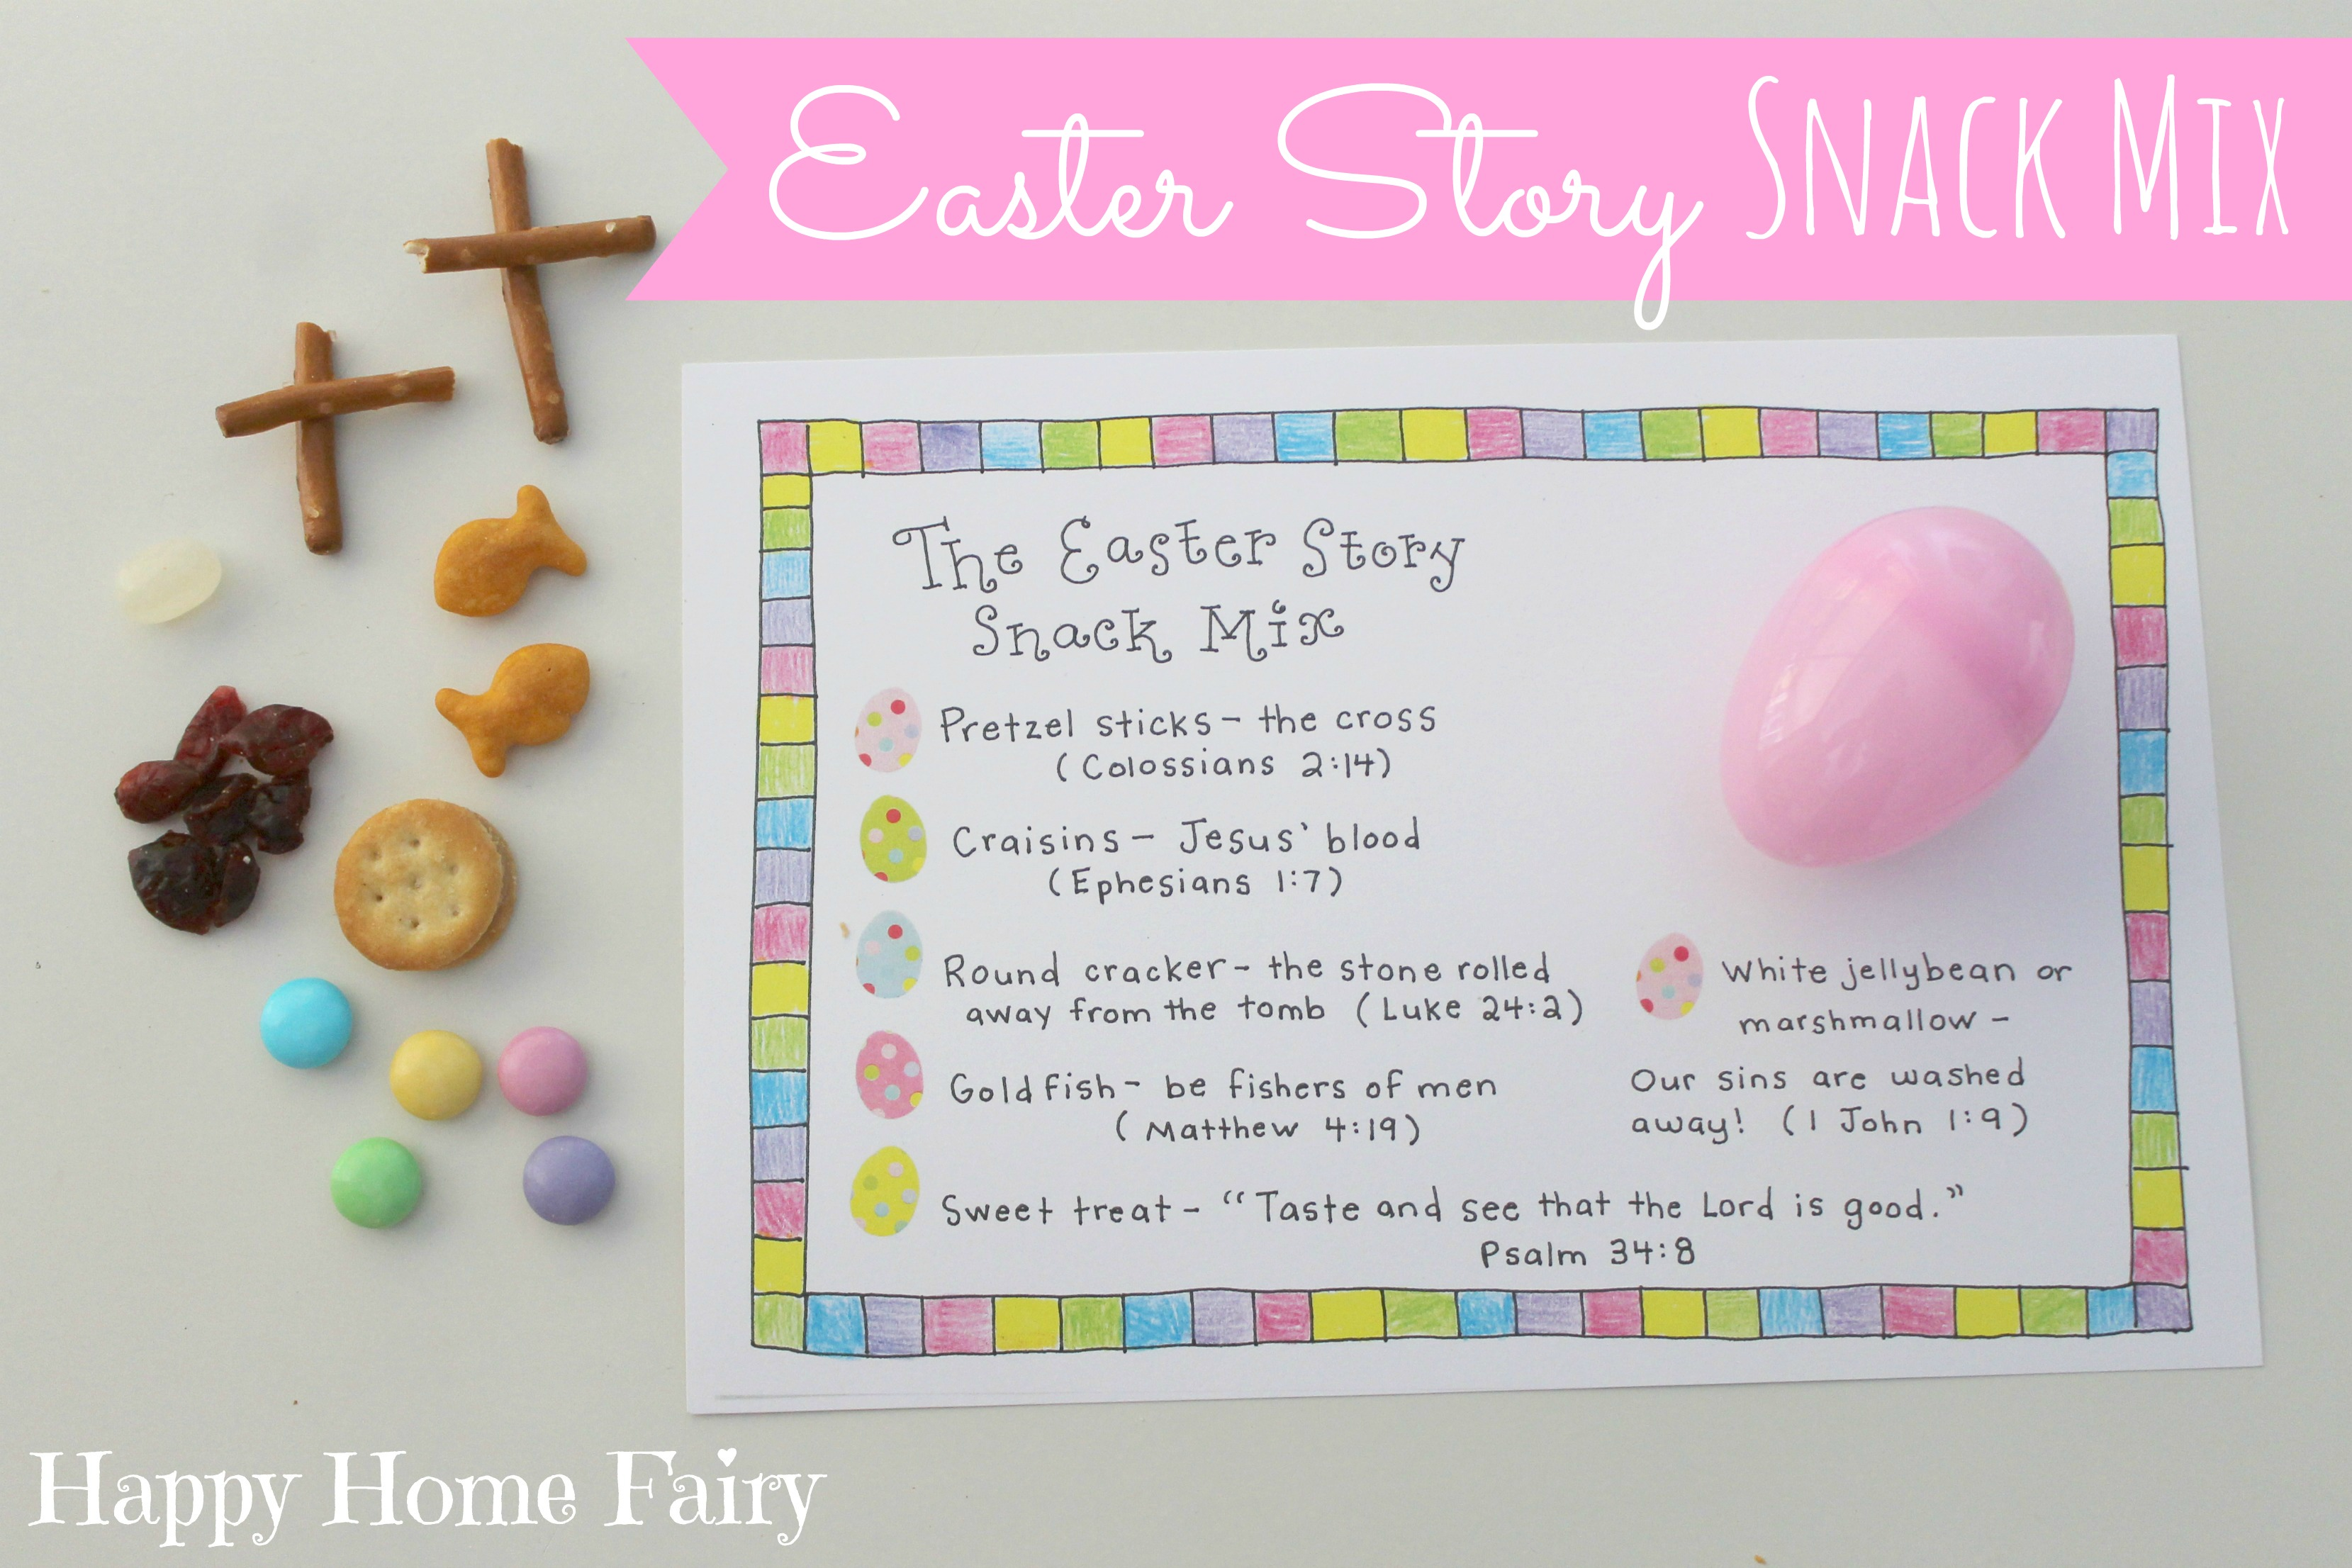 photo about Resurrection Egg Story Printable known as Easter Tale Snack Blend - Absolutely free Printable - Satisfied Residence Fairy